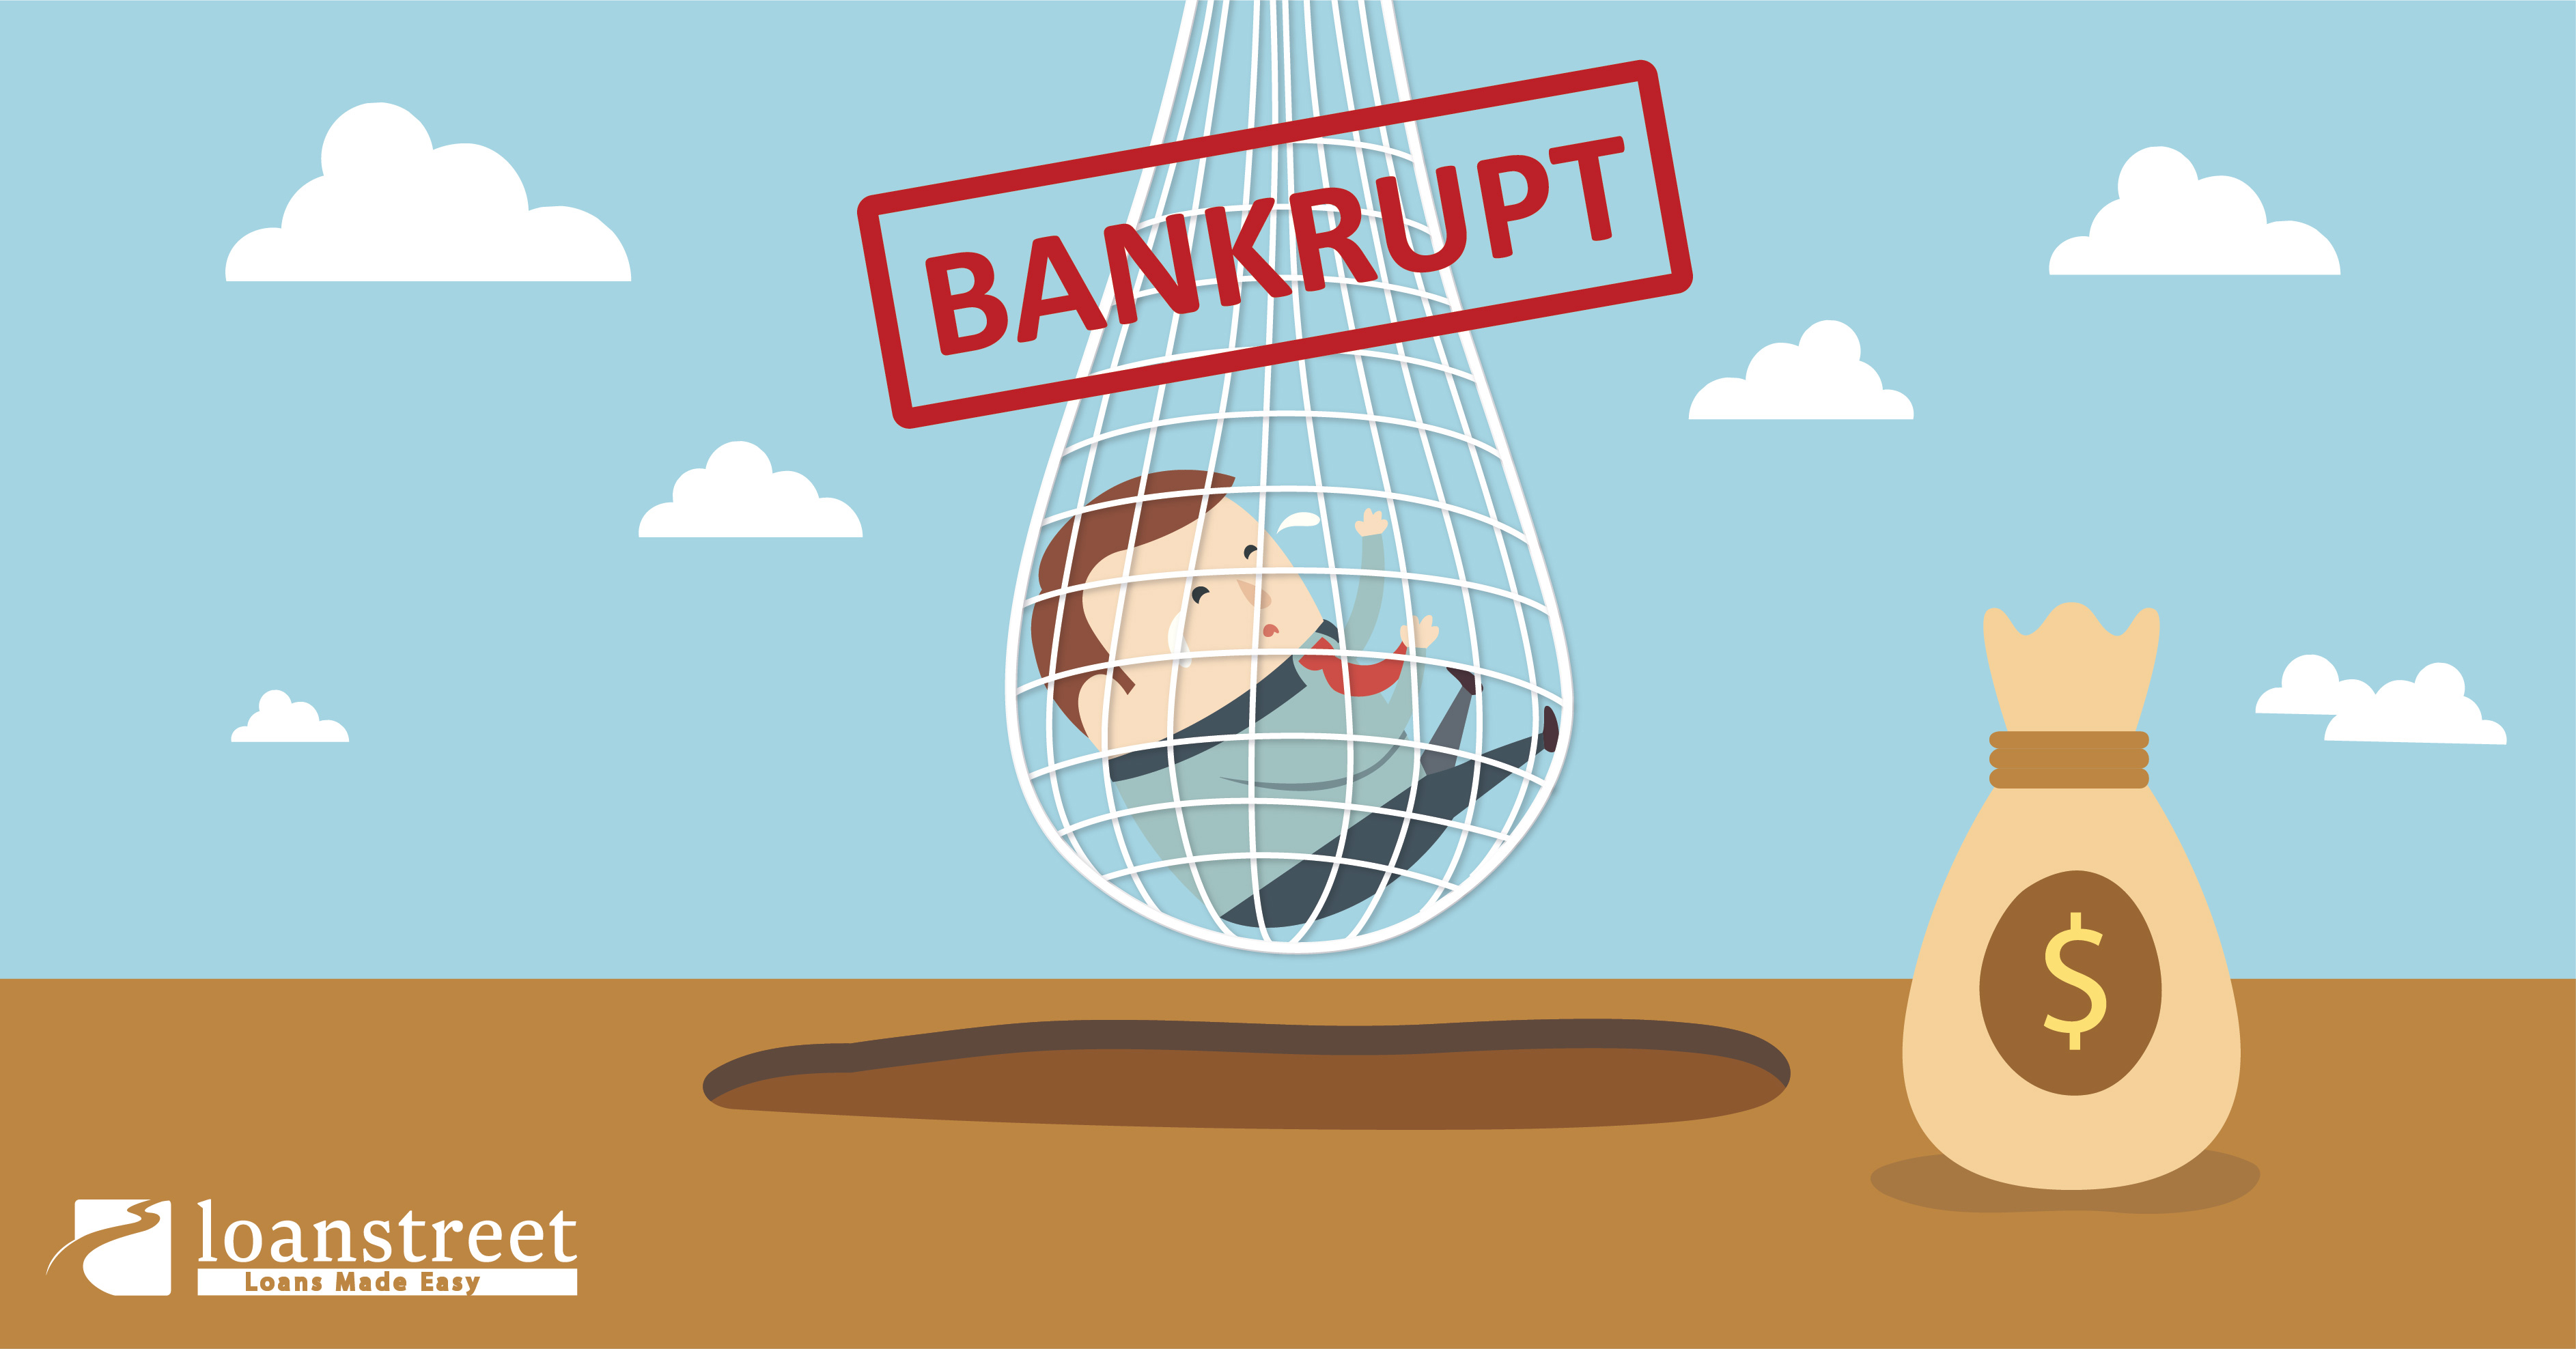 Financial Planning Series Part 5: The Upswing of Bankruptcy Among Young Malaysians